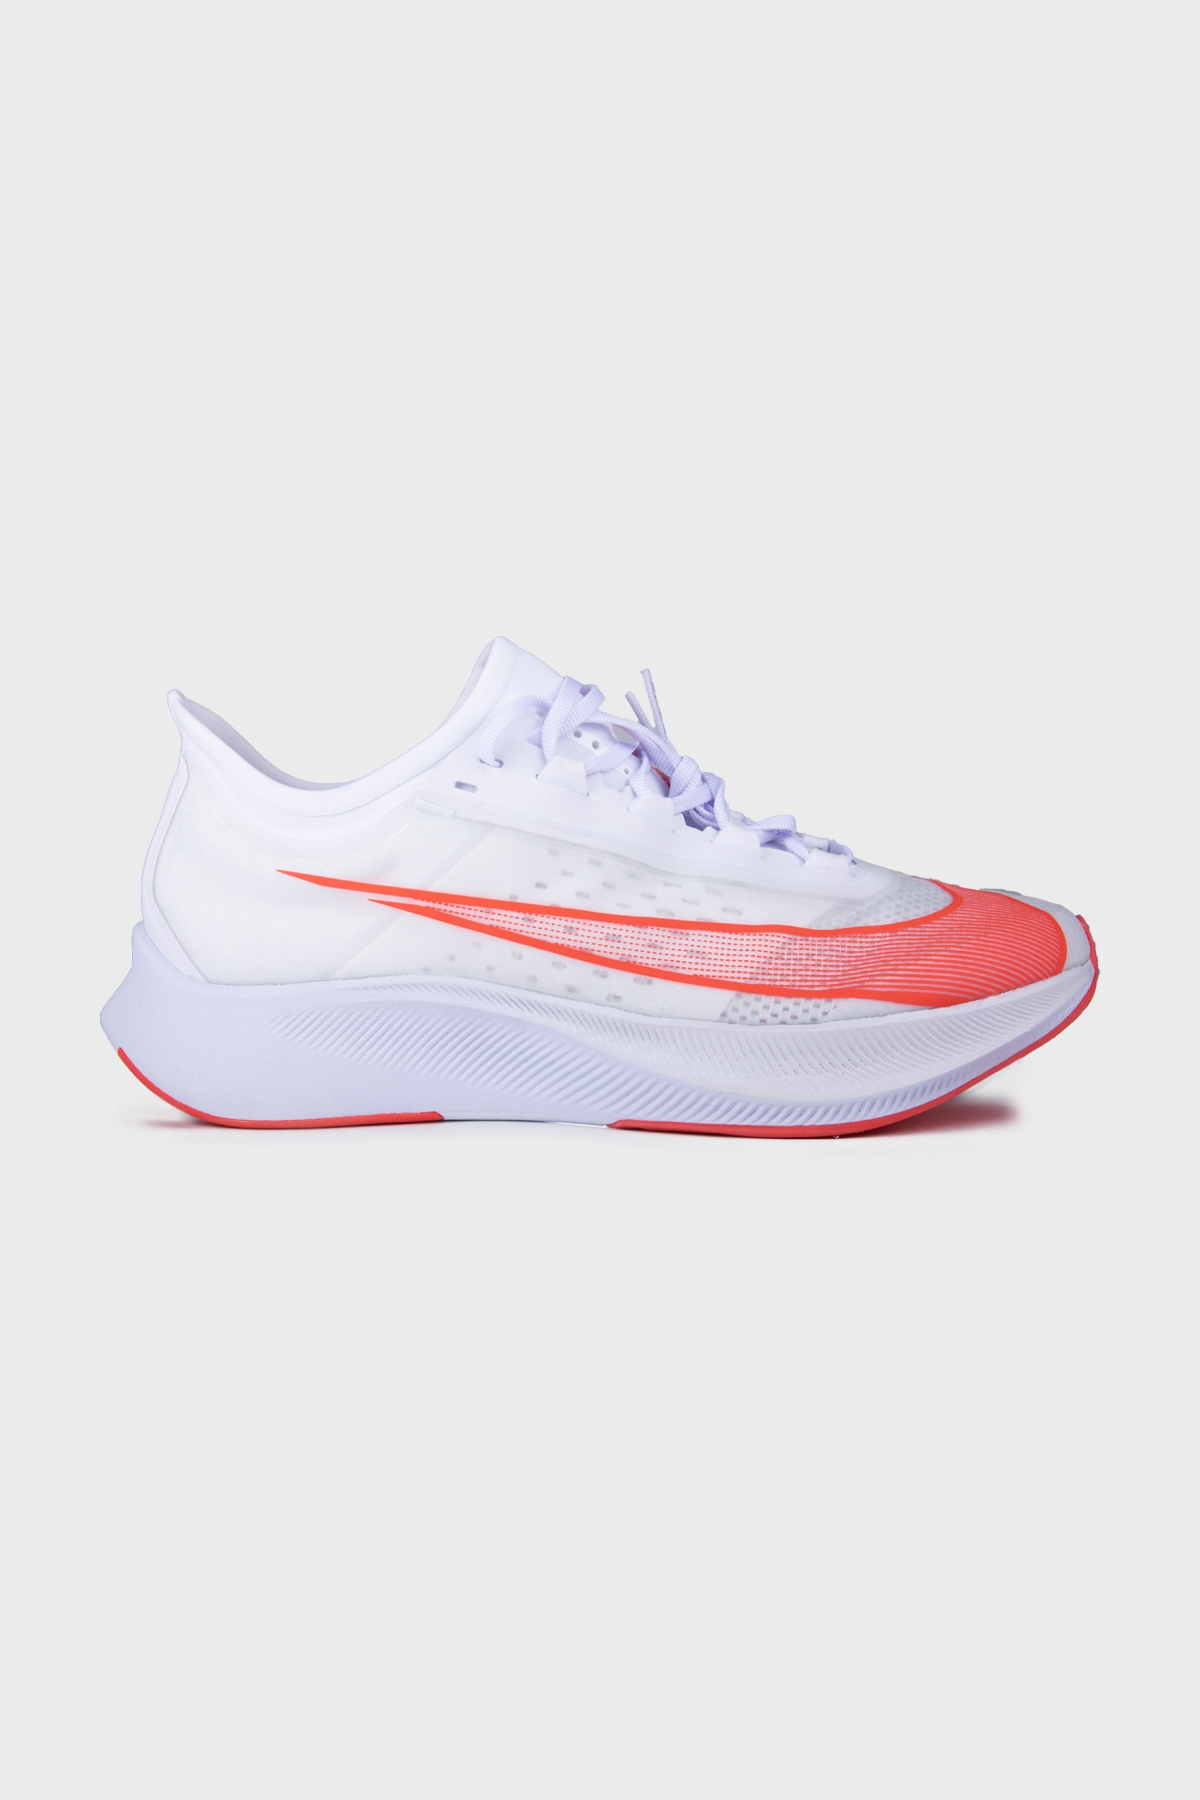 Nike - Zoom fLY 3 - White red